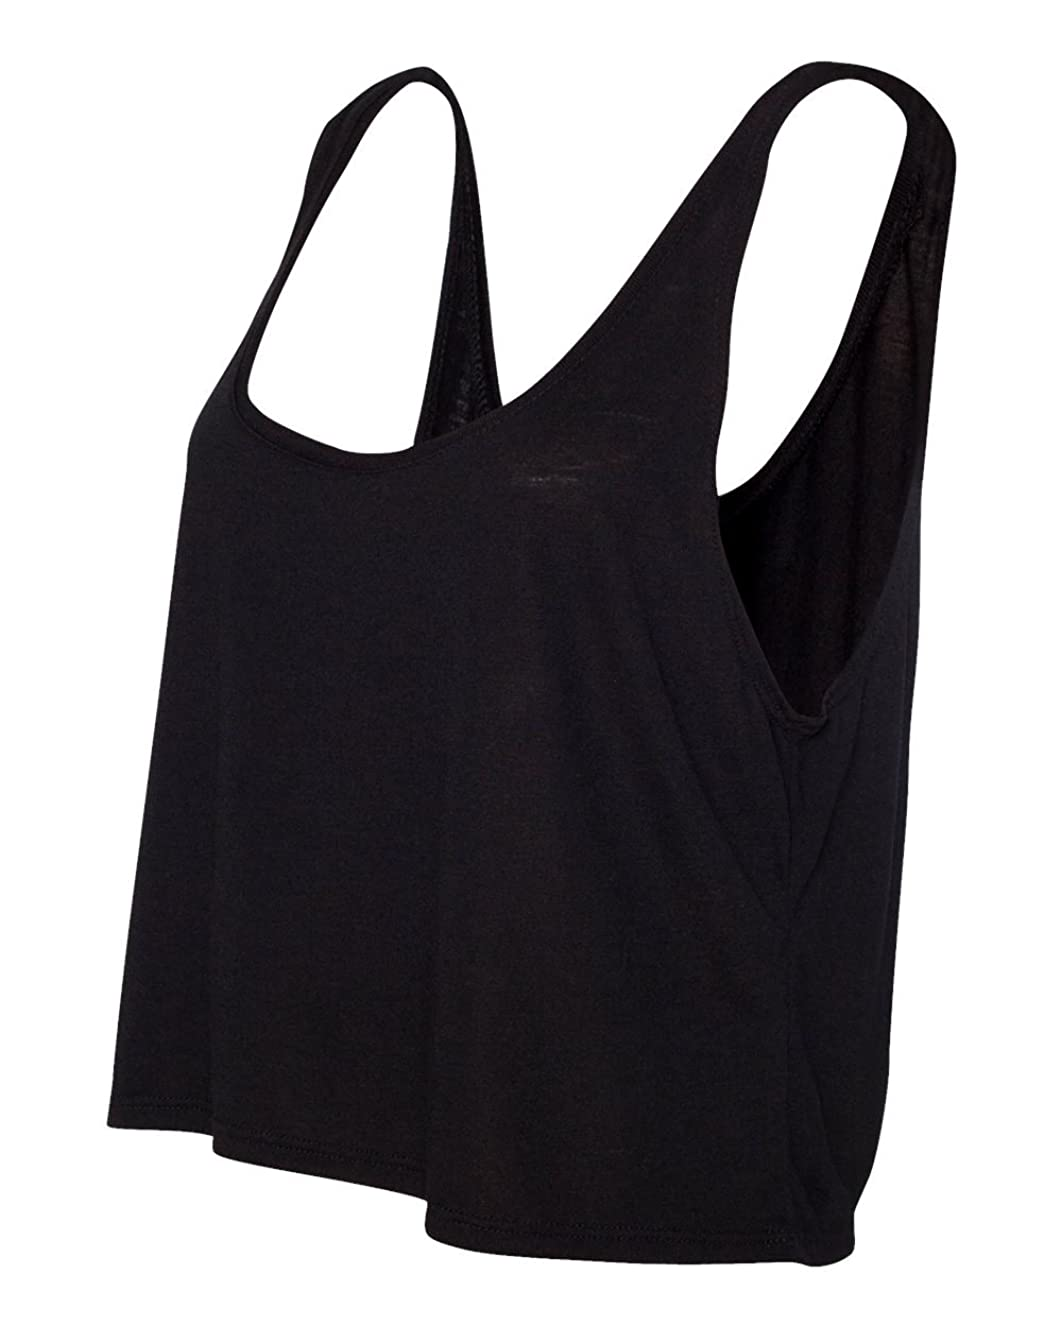 Bella + Canvas - Women's Flowy Boxy Tank - 8880